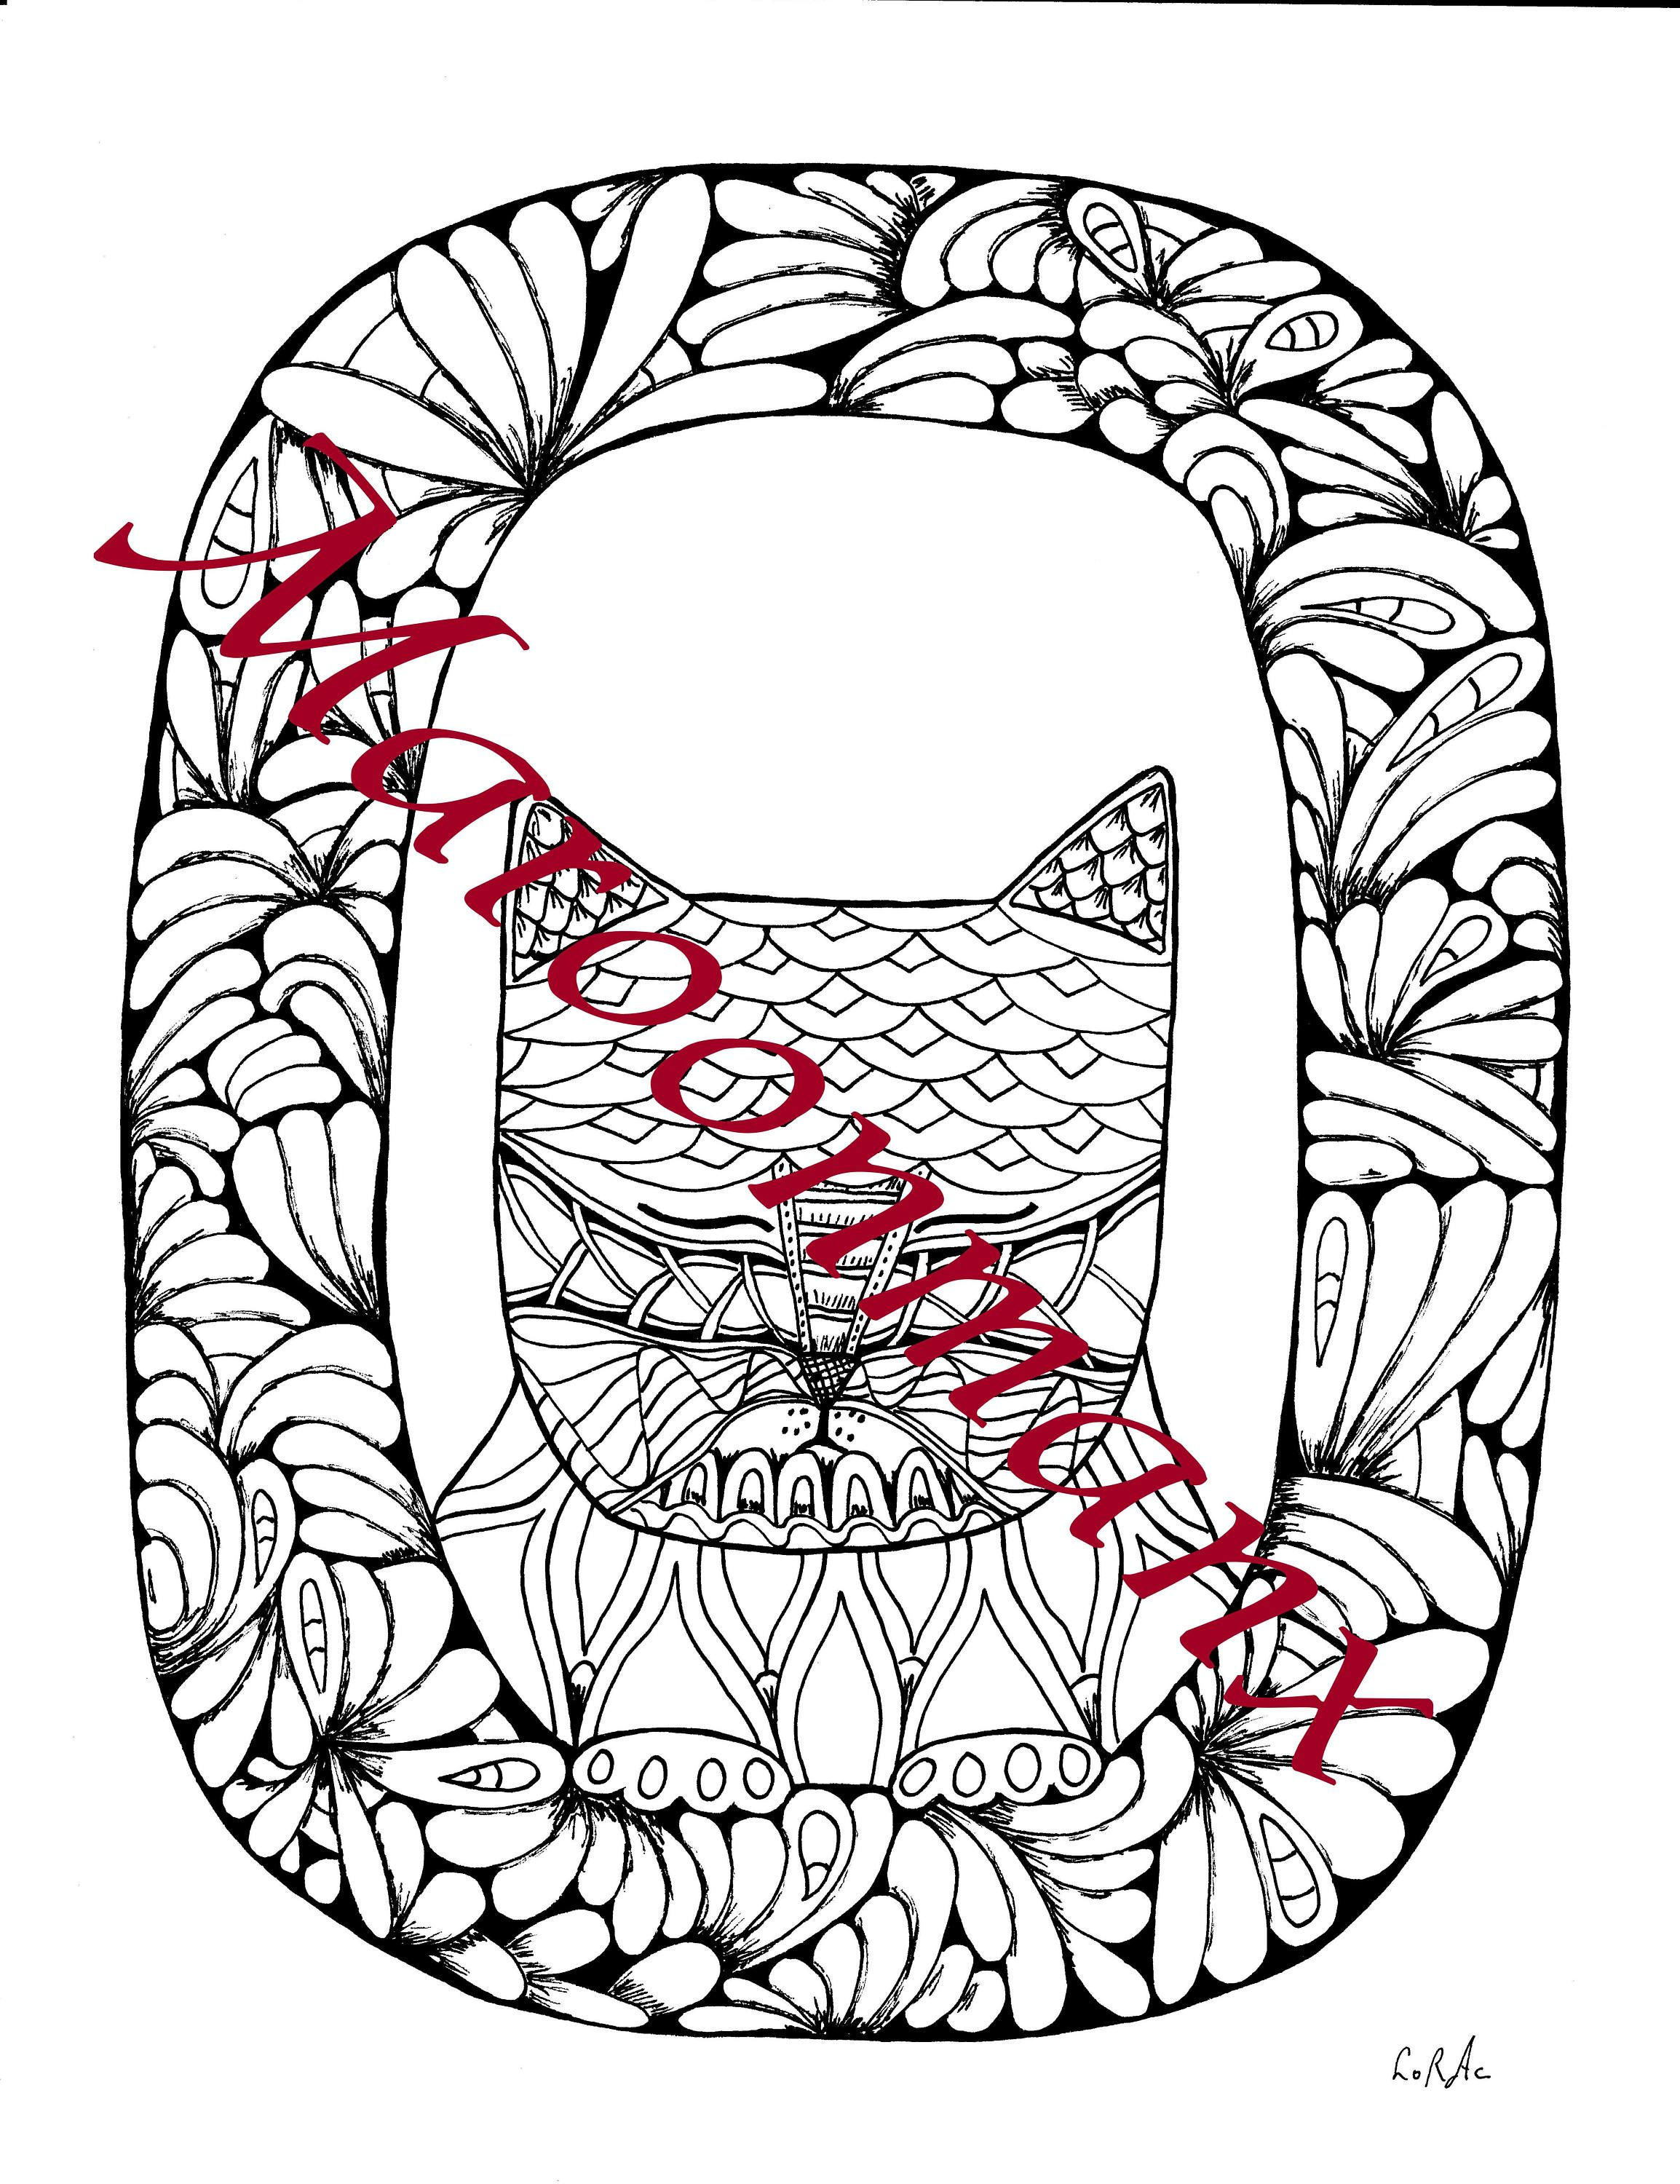 Book colour names - Alphabet Cat Numbers Printable Downloadable Adult Coloring Pages Book Color For Holidays Color Your Name